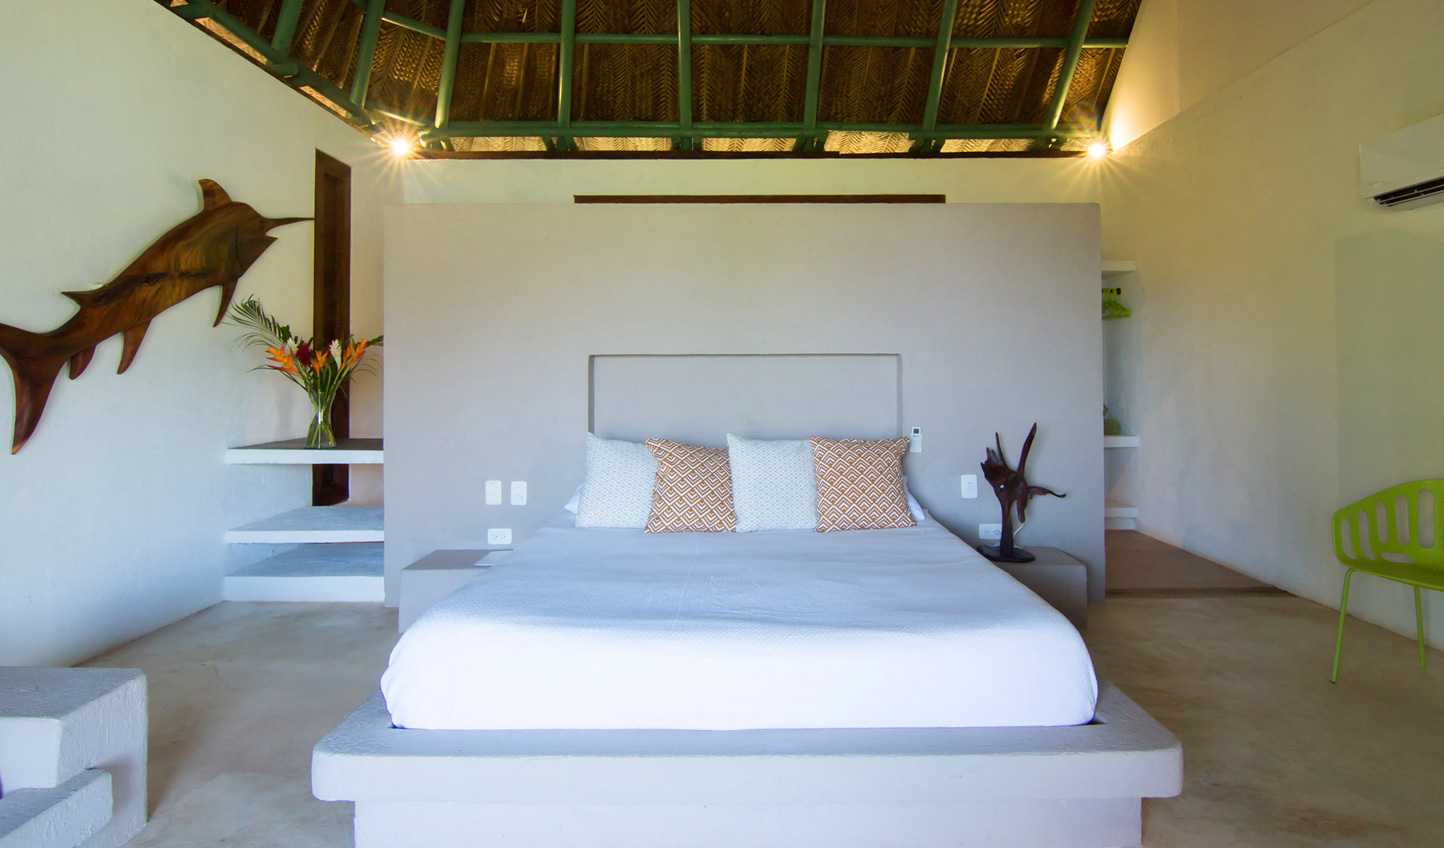 Minimal design places emphasis on natural materials and the surrounding beauty of Tayrona